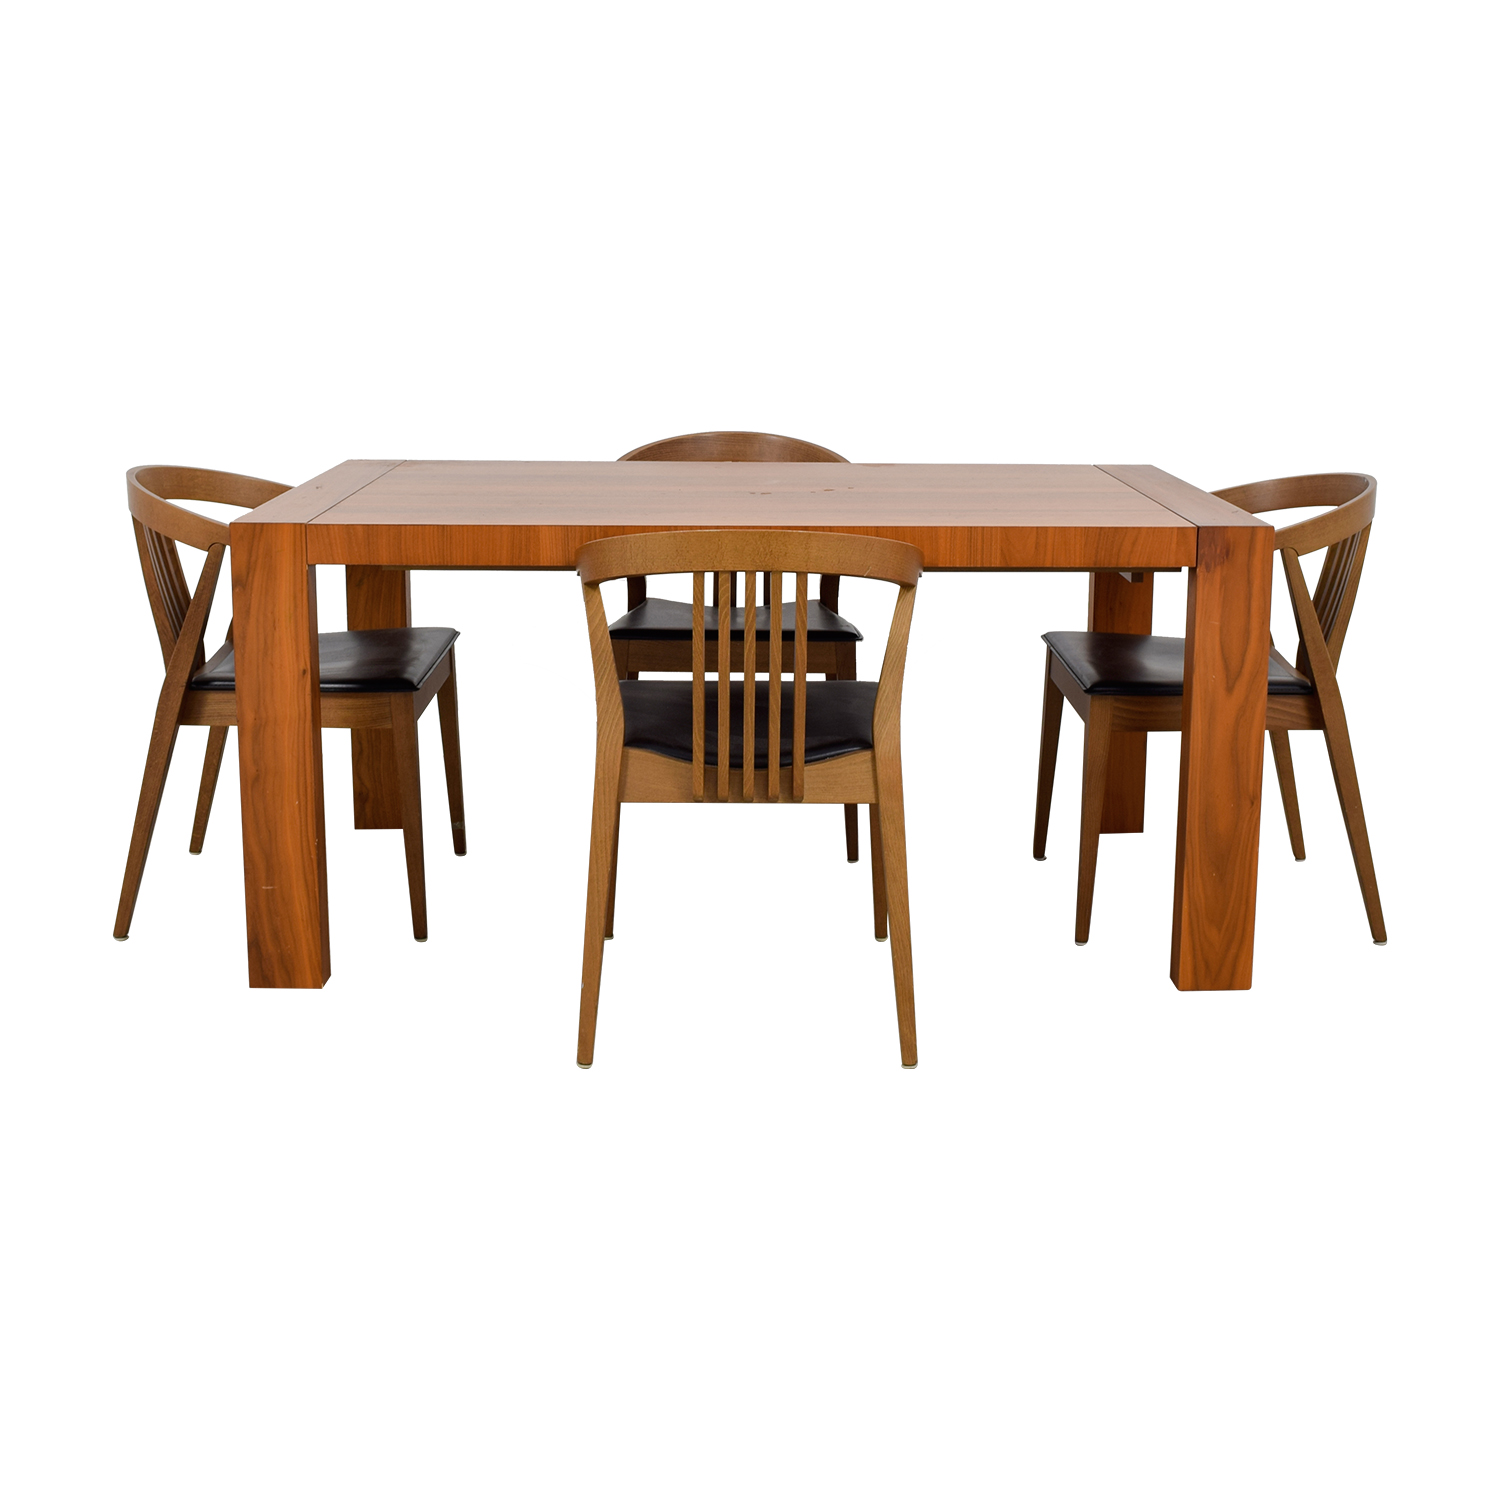 buy Calligaris Calligaris Extendable Wood Dining Set online